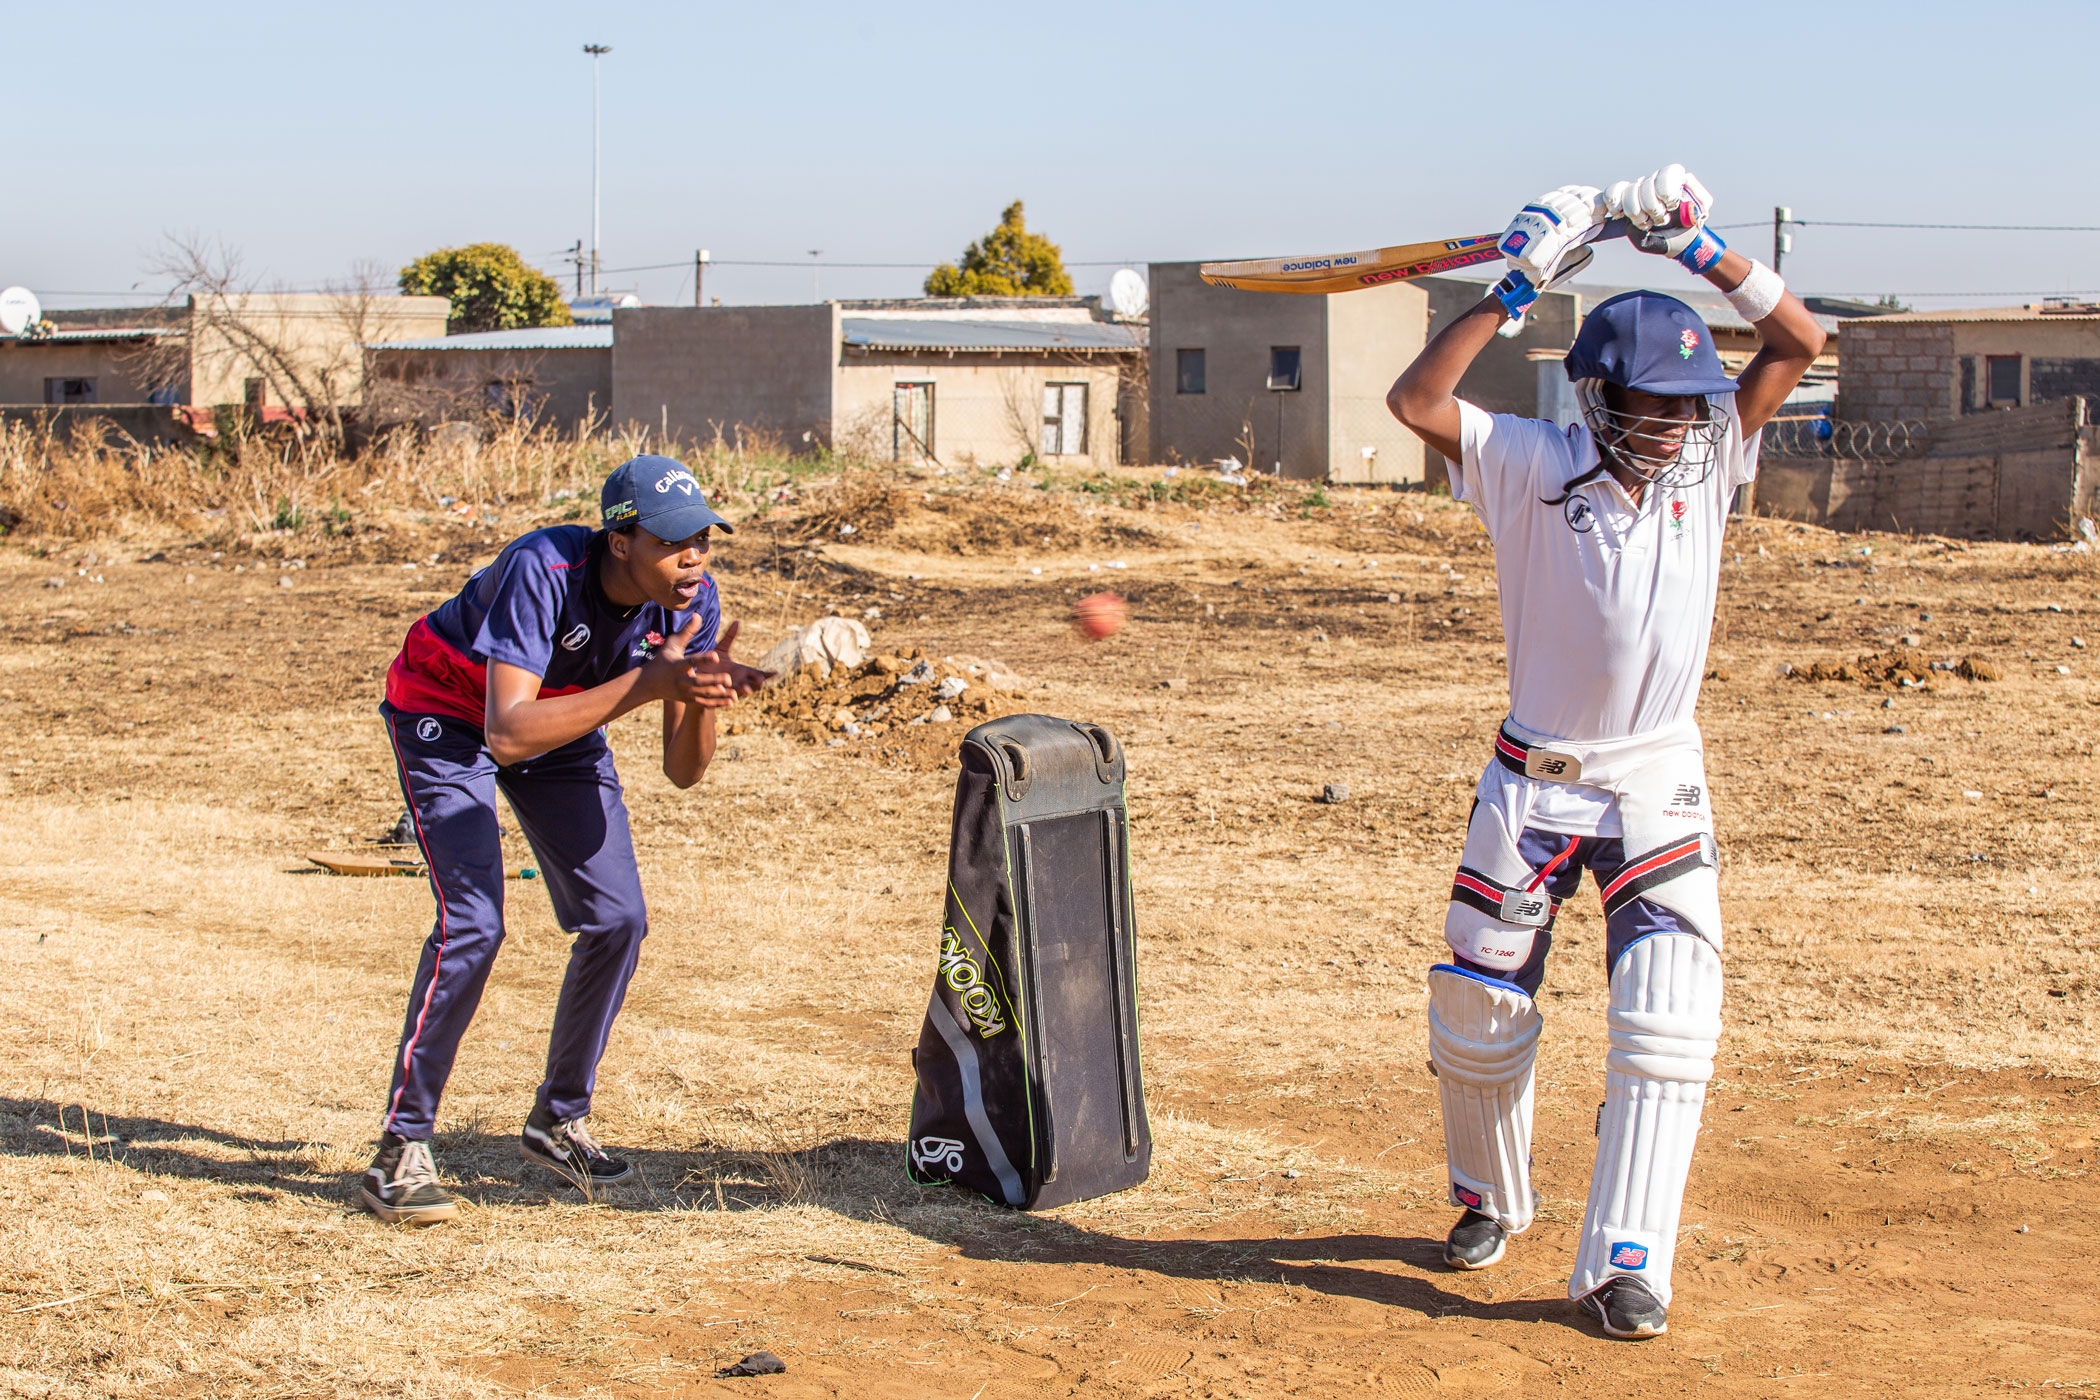 19 July 2020: Duduza Cricket Club players at a practice session. The club was among 20 others in the country to be awarded Blue Flag status at the 2020 Cricket South Africa Amateur Awards. (Photograph by Gallo Images/ OJ Koloti)